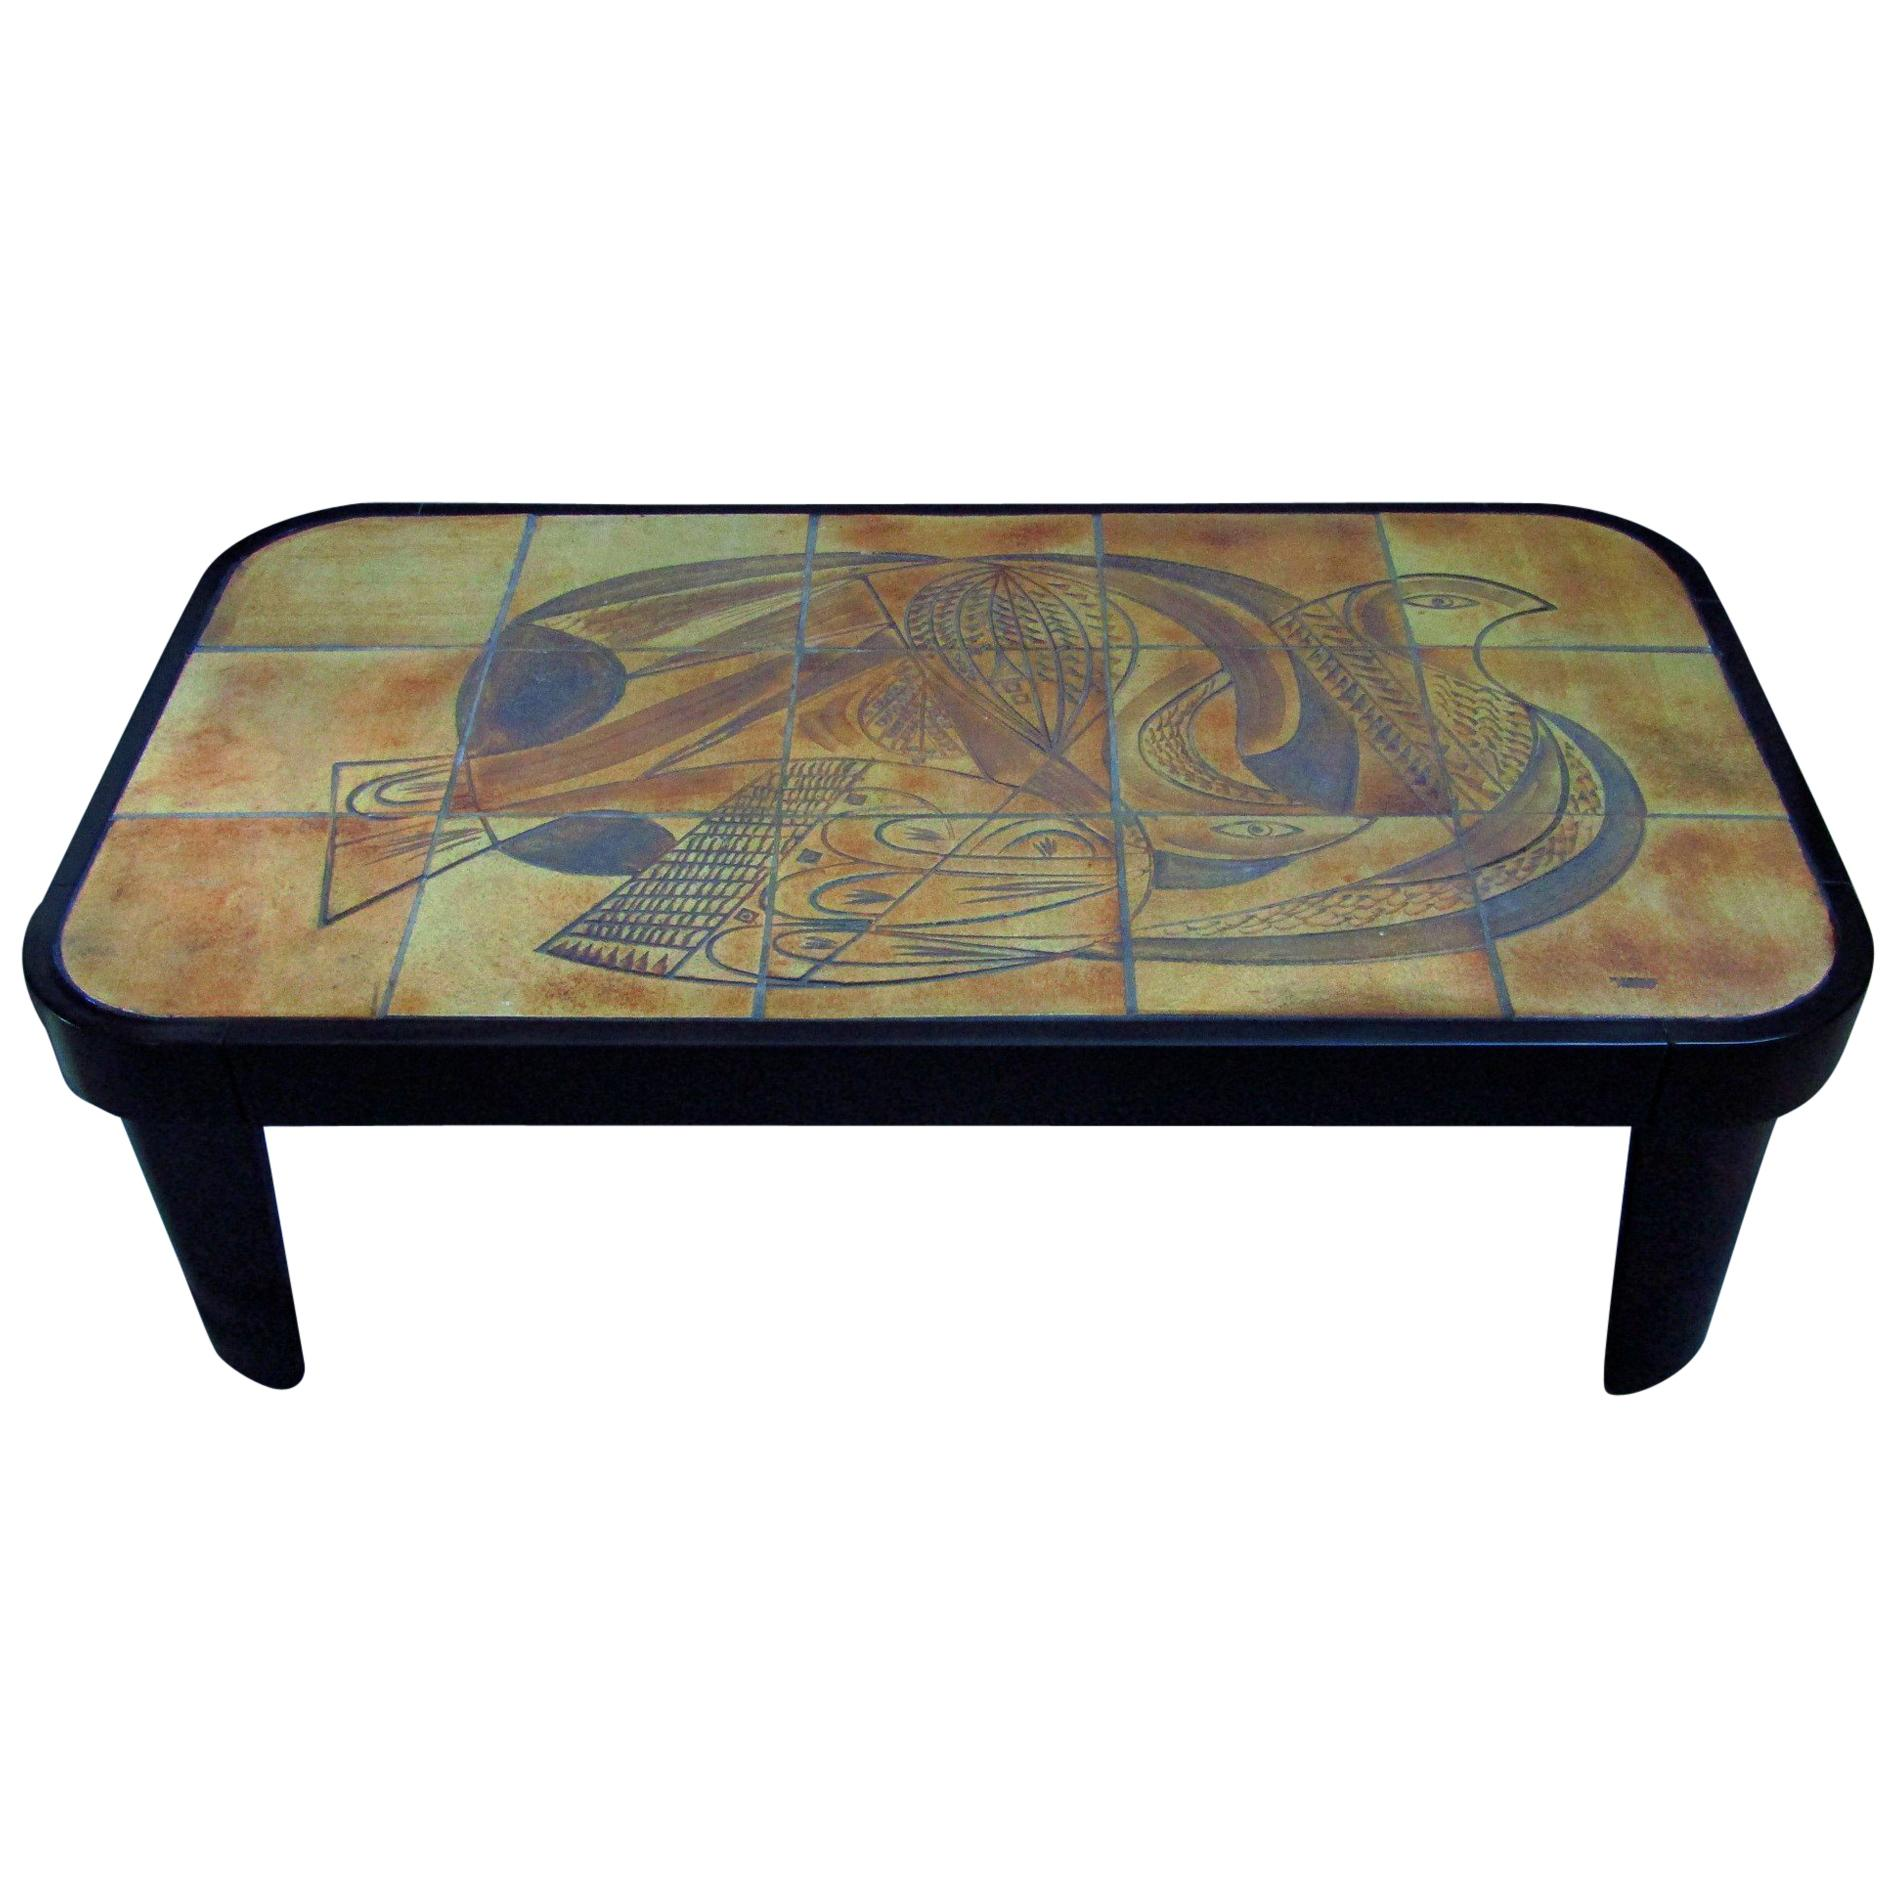 Midcentury Vallauris Tiles Cubist Coffee Table